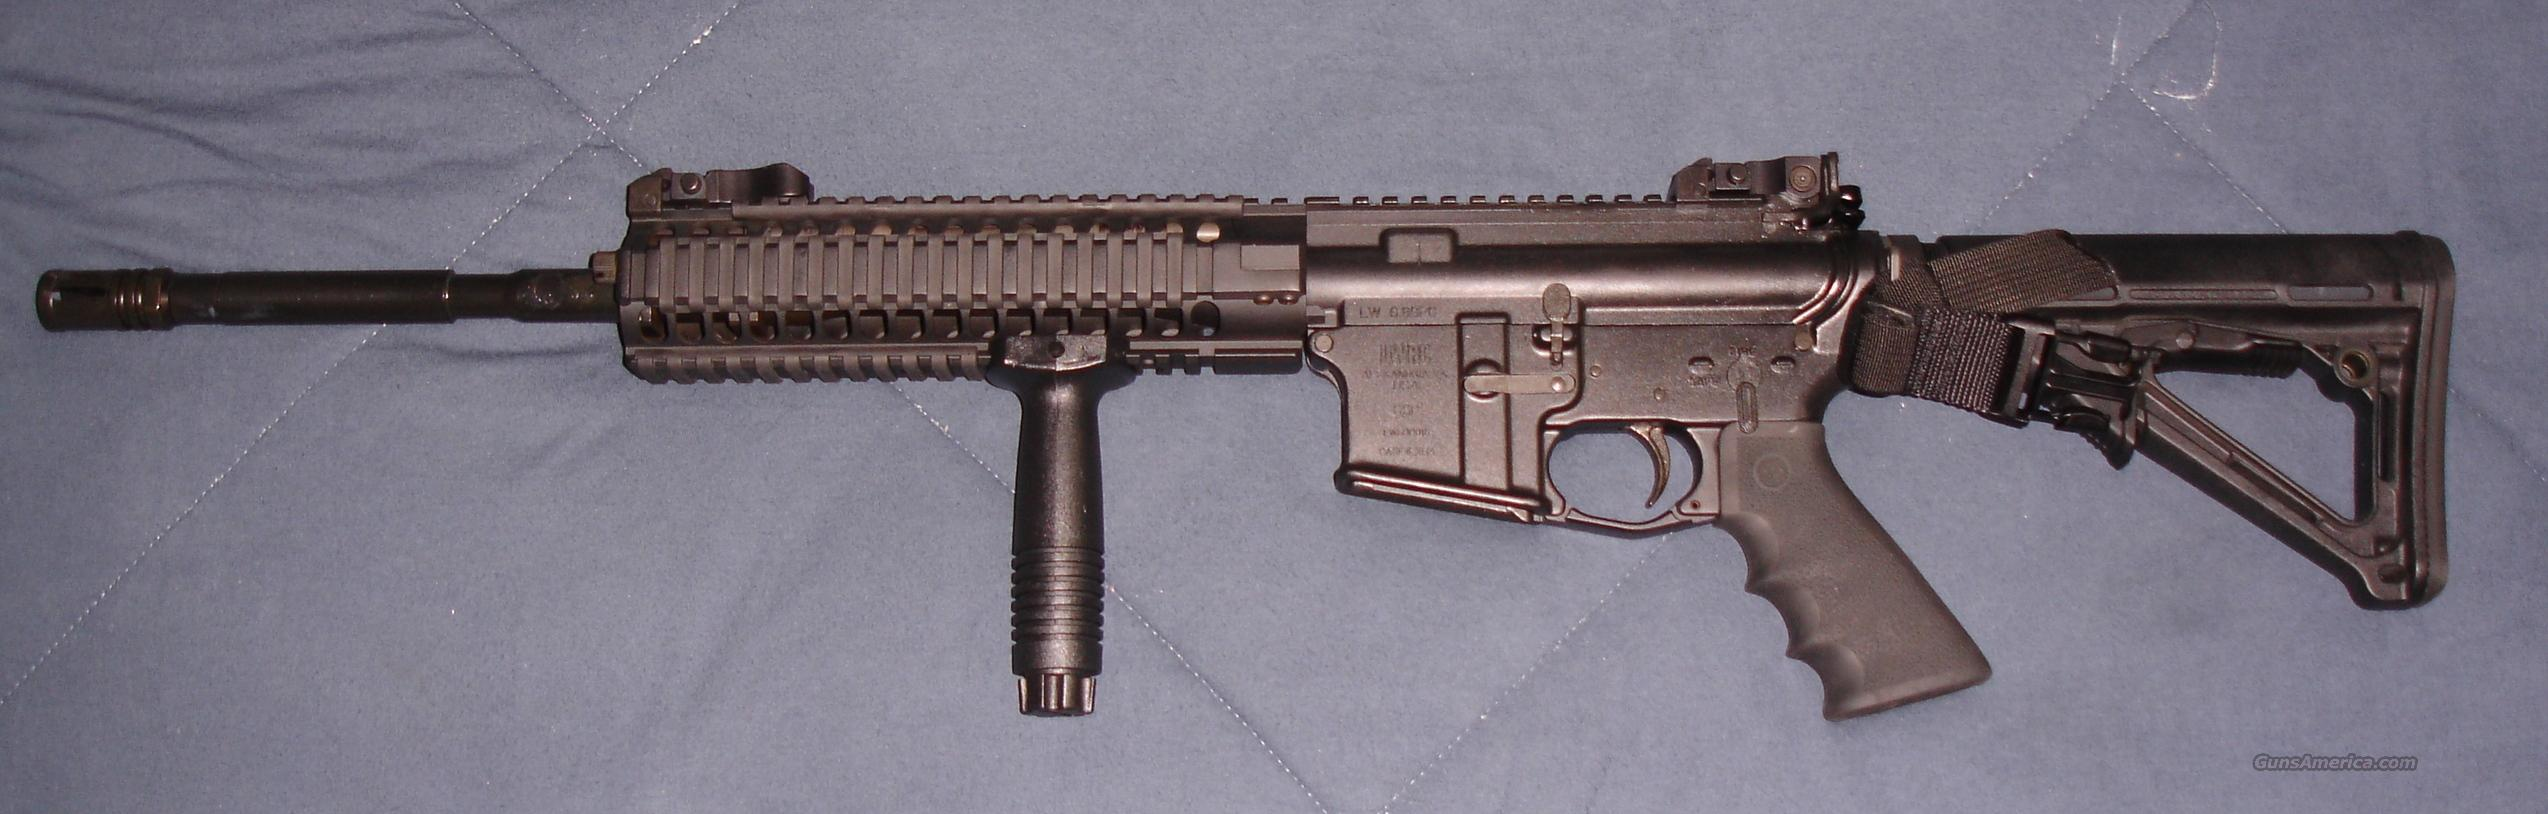 LWRC 6.8mm SRT W/Extras  Guns > Rifles > AR-15 Rifles - Small Manufacturers > Complete Rifle